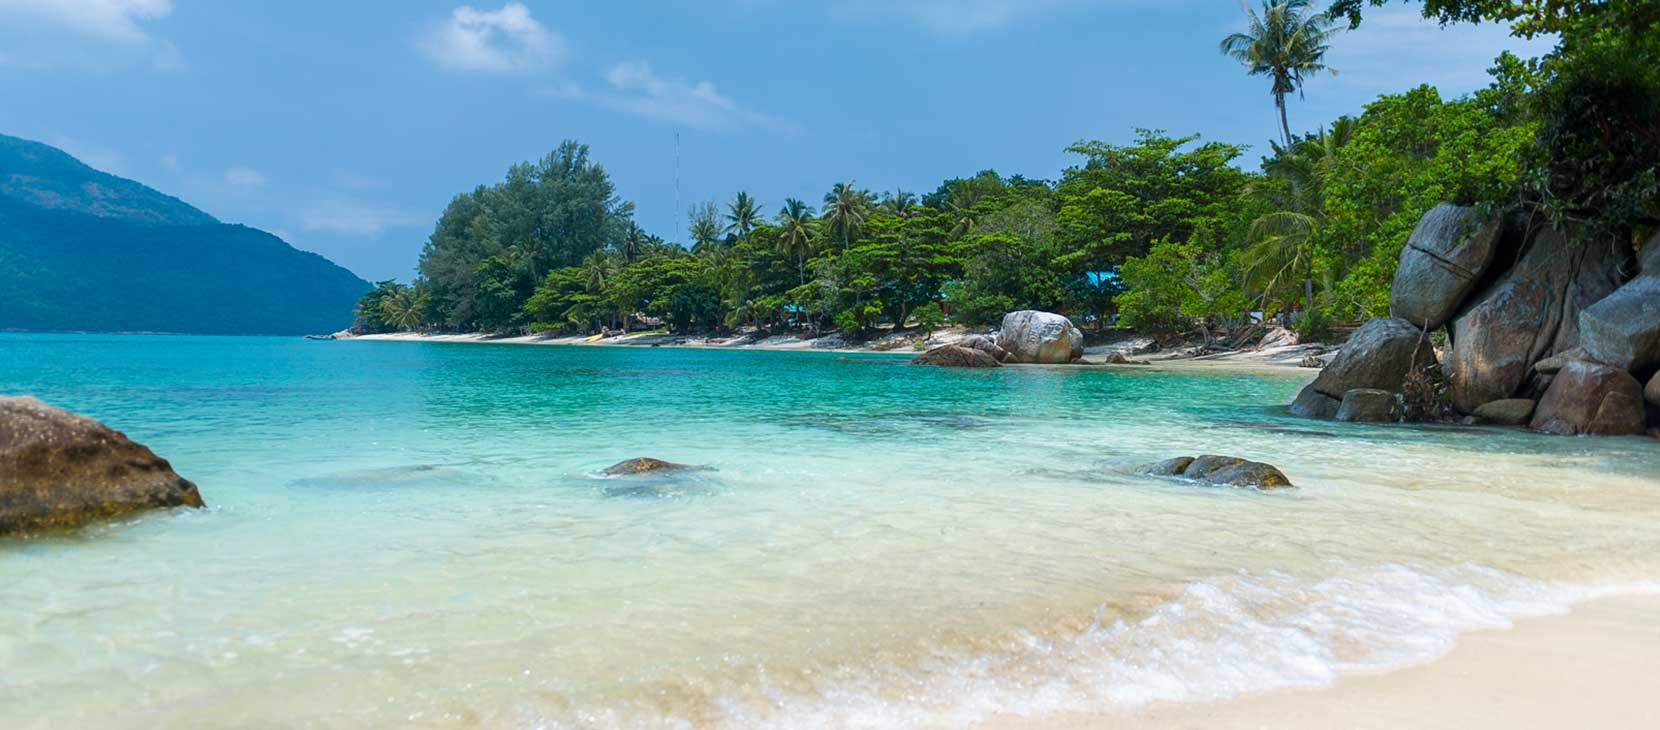 Beaches in Asia for Couples